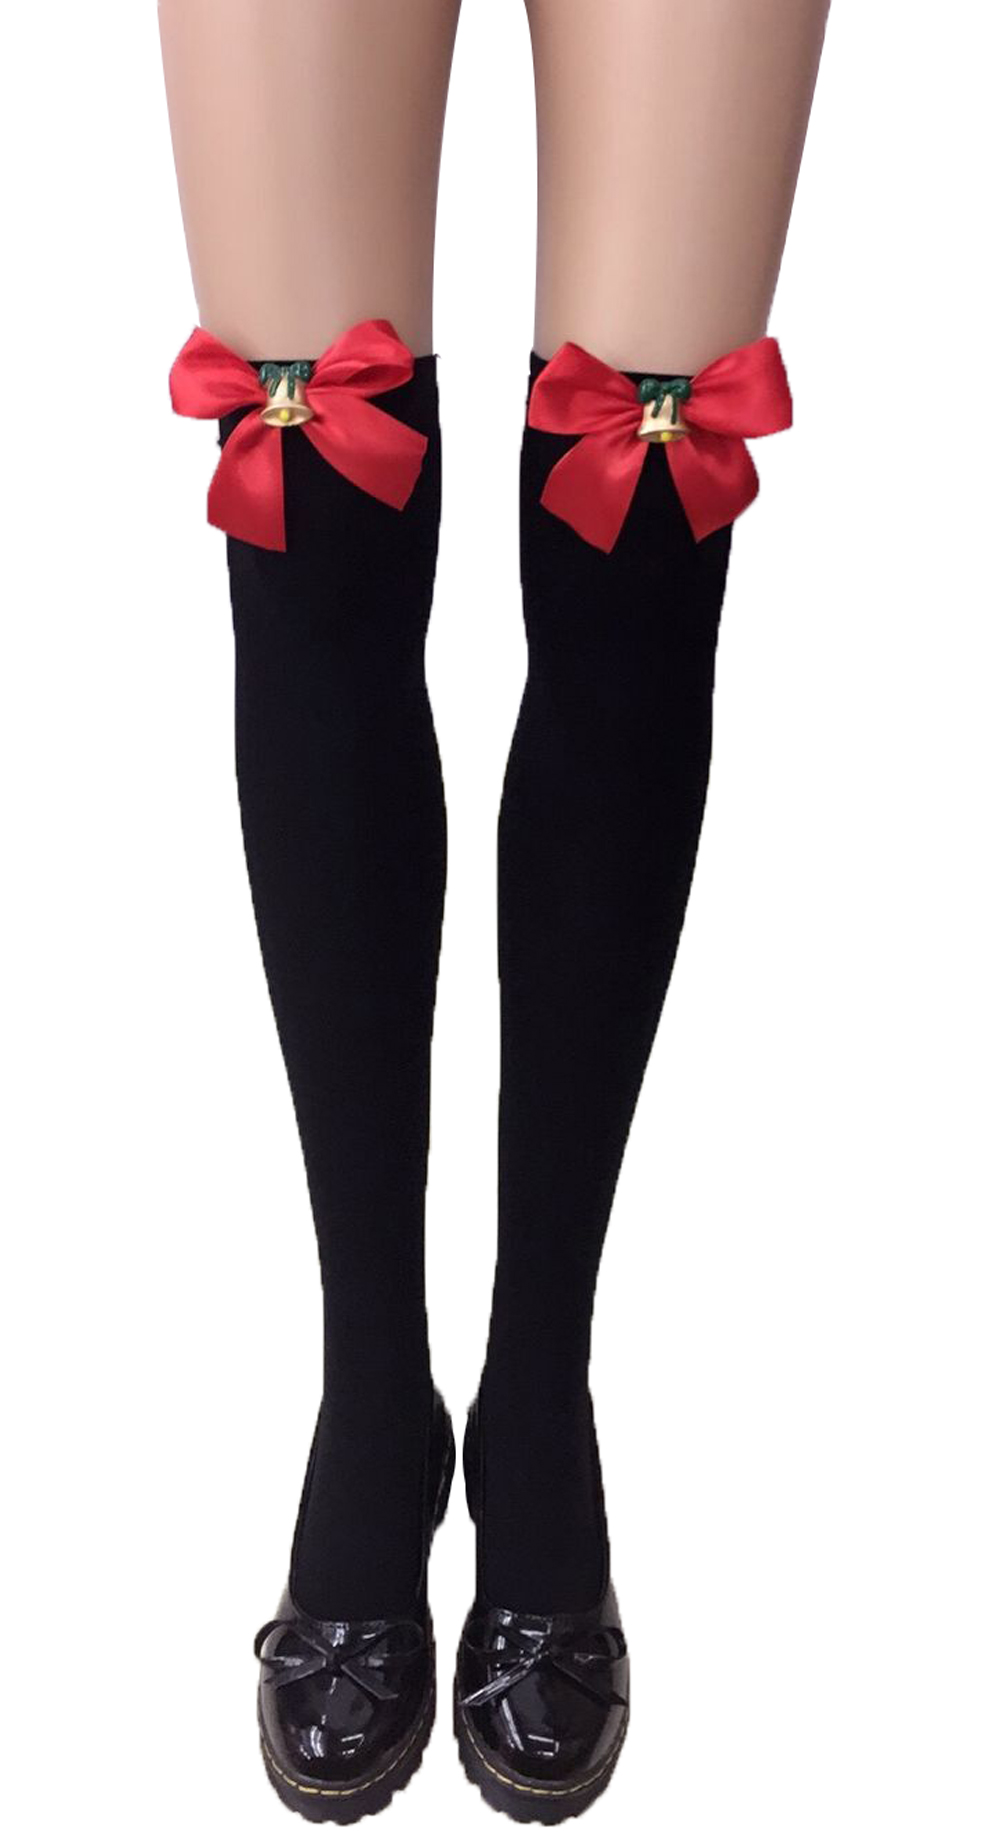 F8195-2 Thigh Stocking with Satin Bows Opaque Over The Knee Halloween Socks